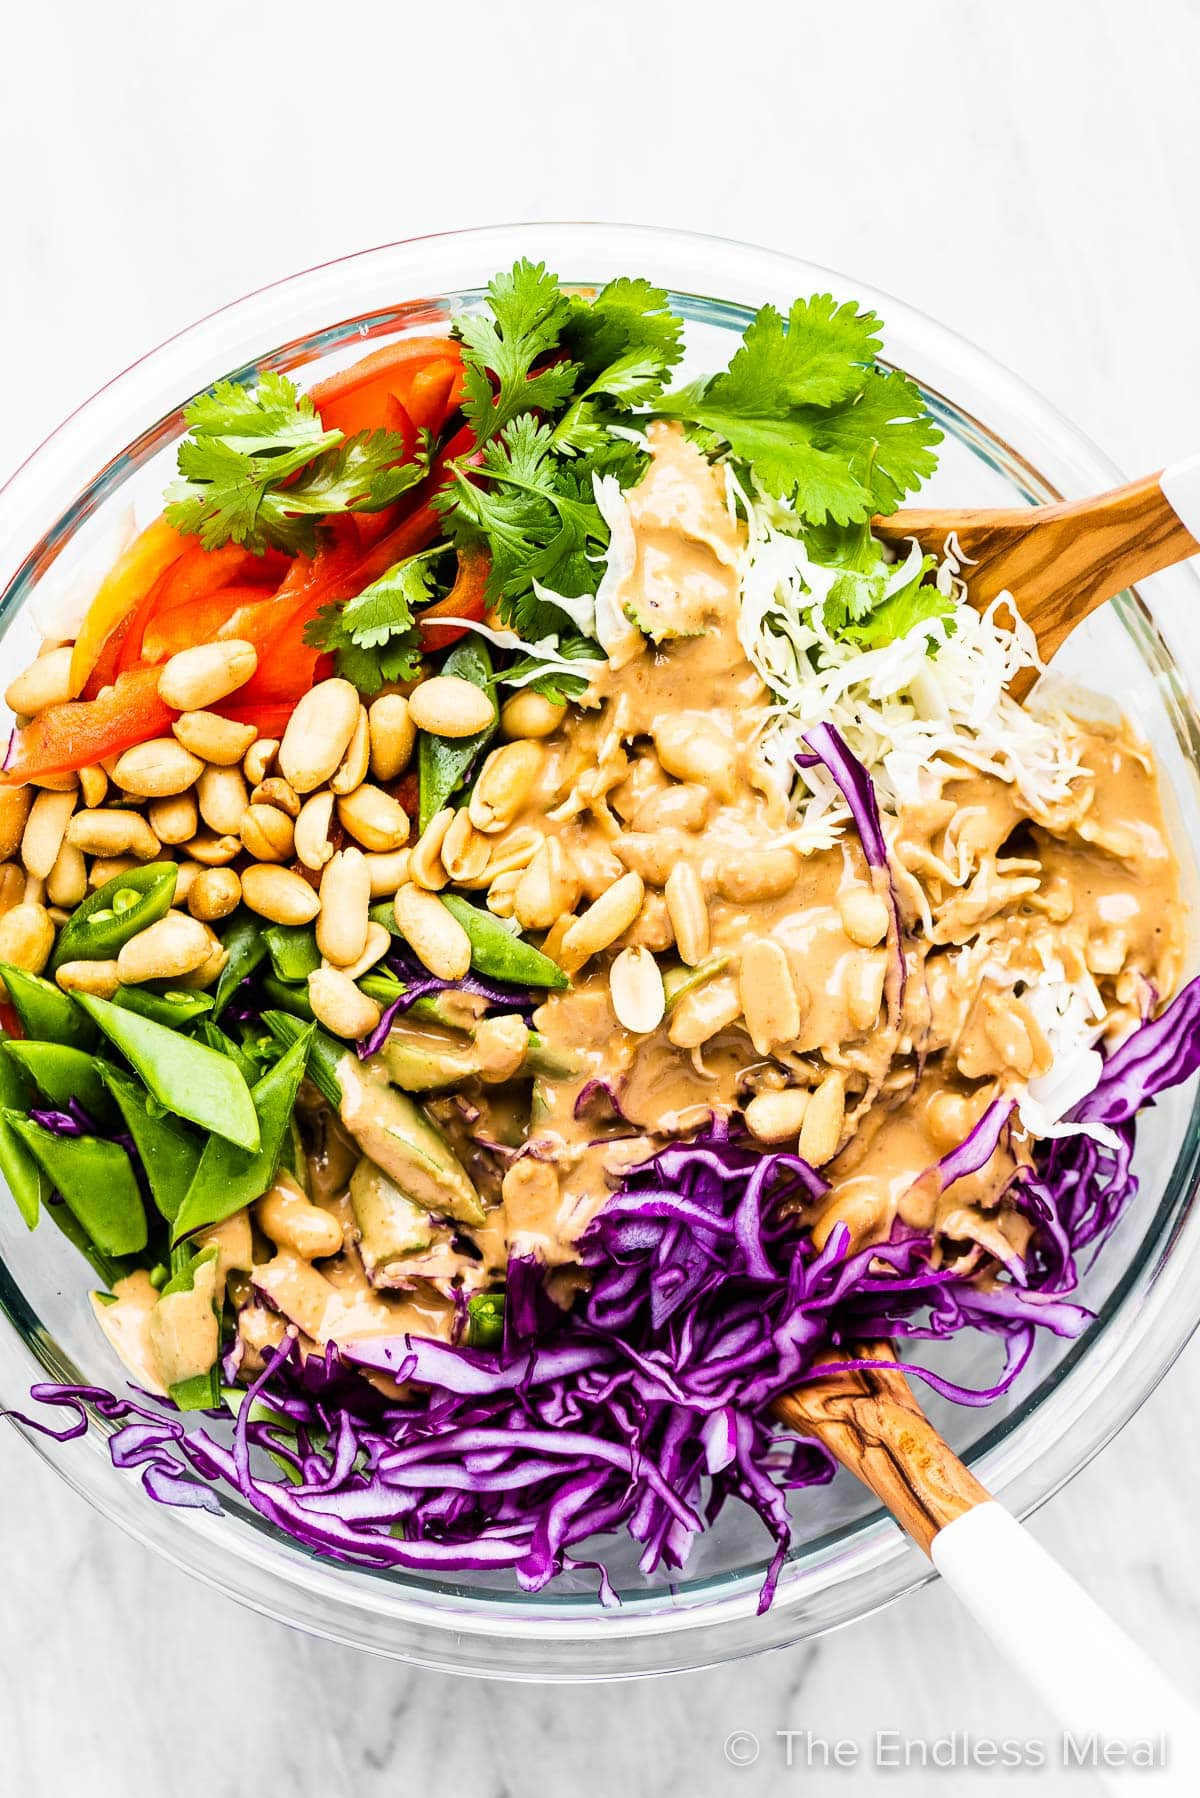 Peanut dressing poured over top of salad in a bowl.